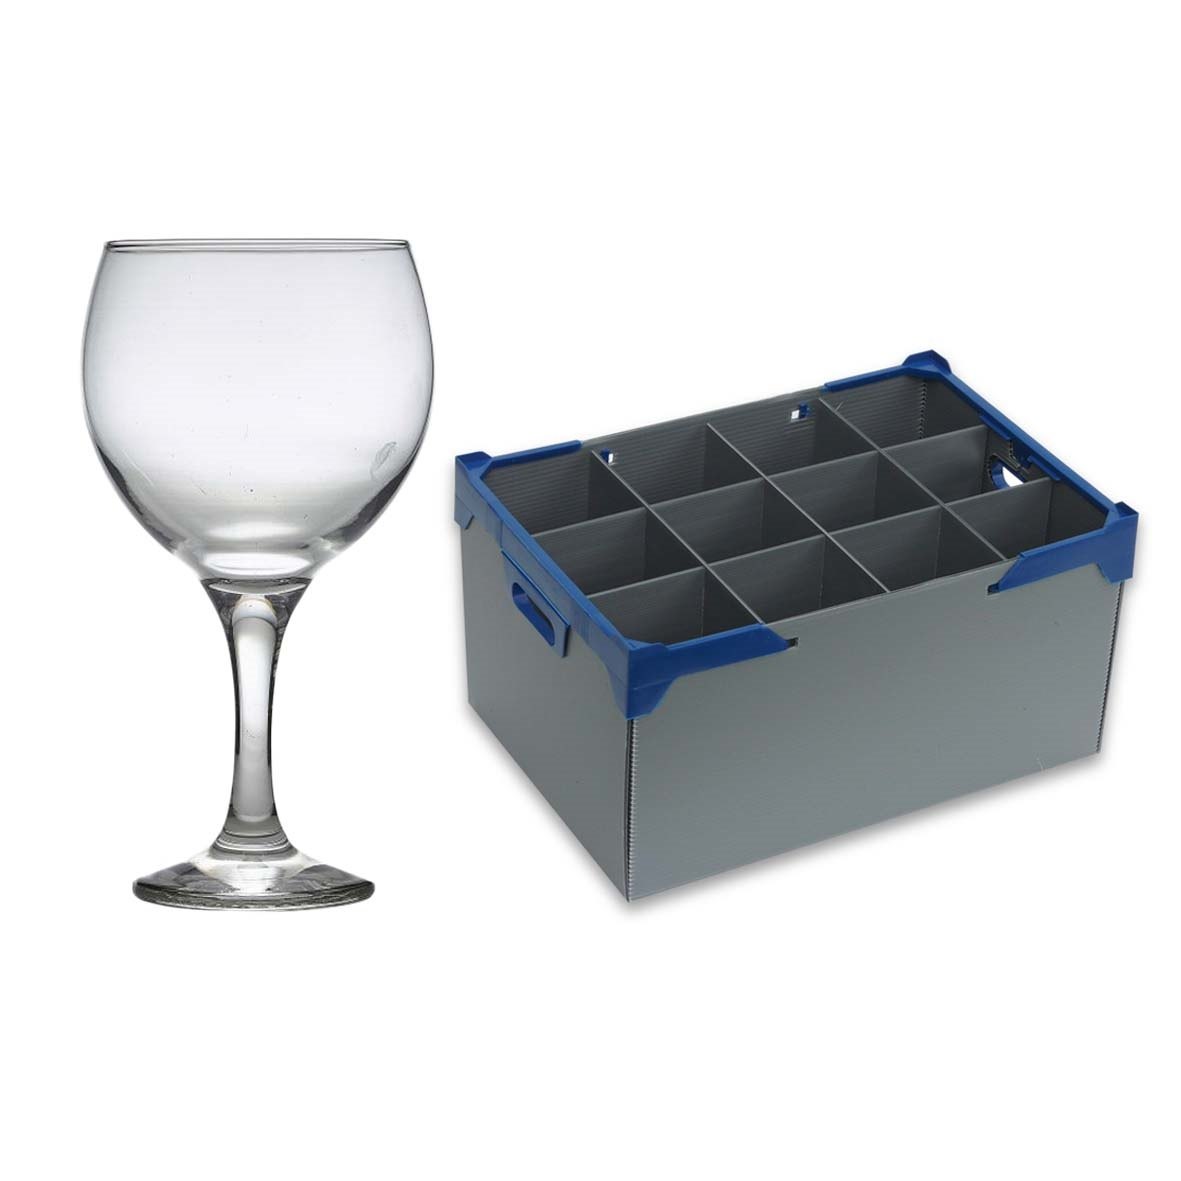 Gin Glasses and Martini Glasses with Glassware Storage Box